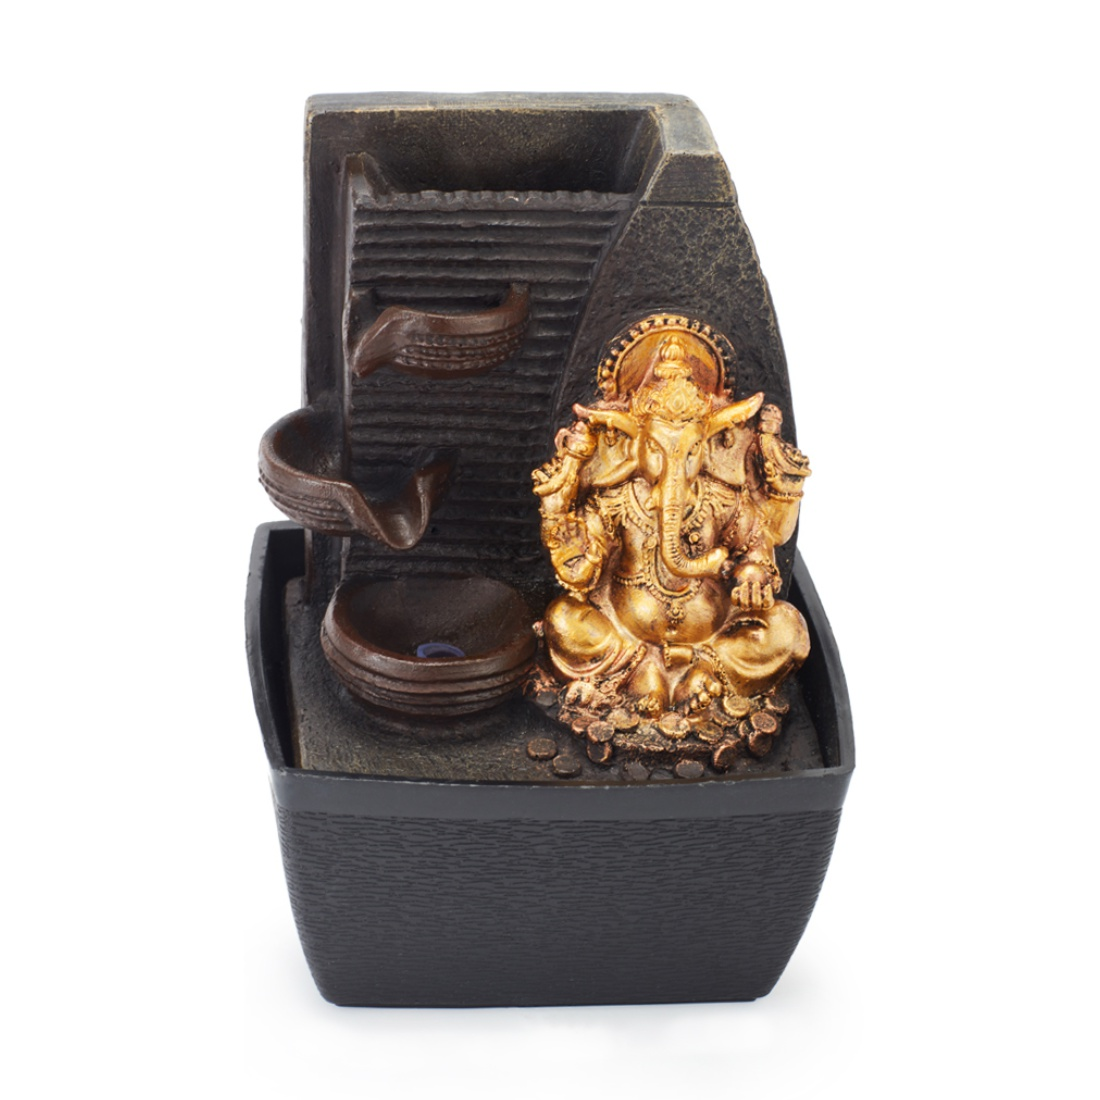 Impression Ganesha Water Pot Embellished Polyresin Small Fountains in Brown/Gold Colour by Living Essence